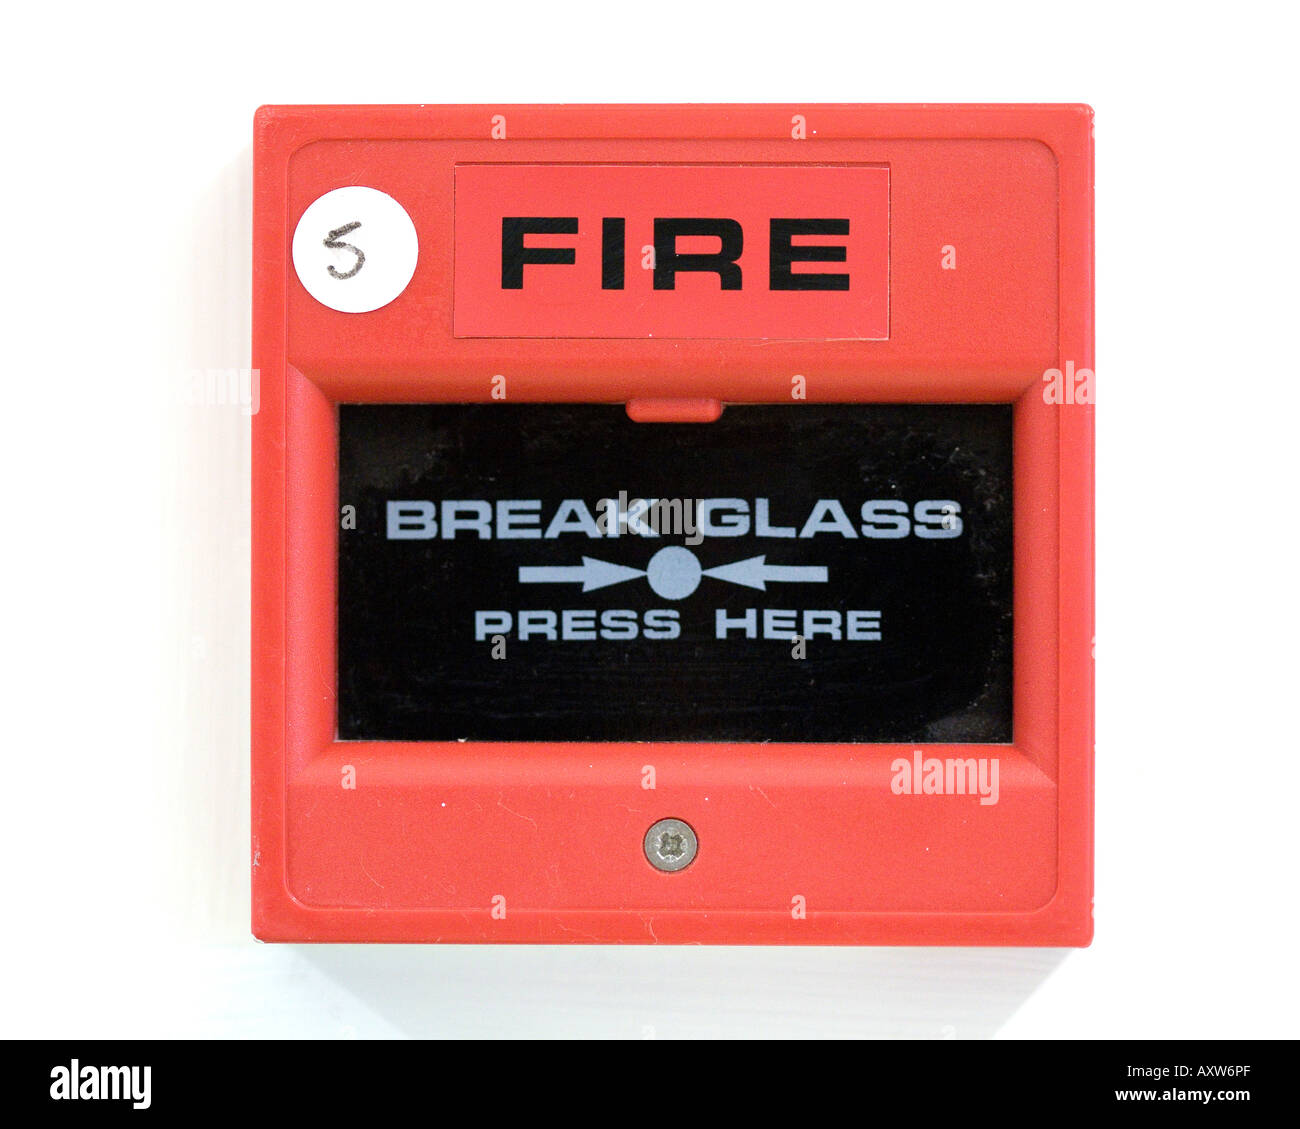 fire break glass here button alarm red box on wall stock